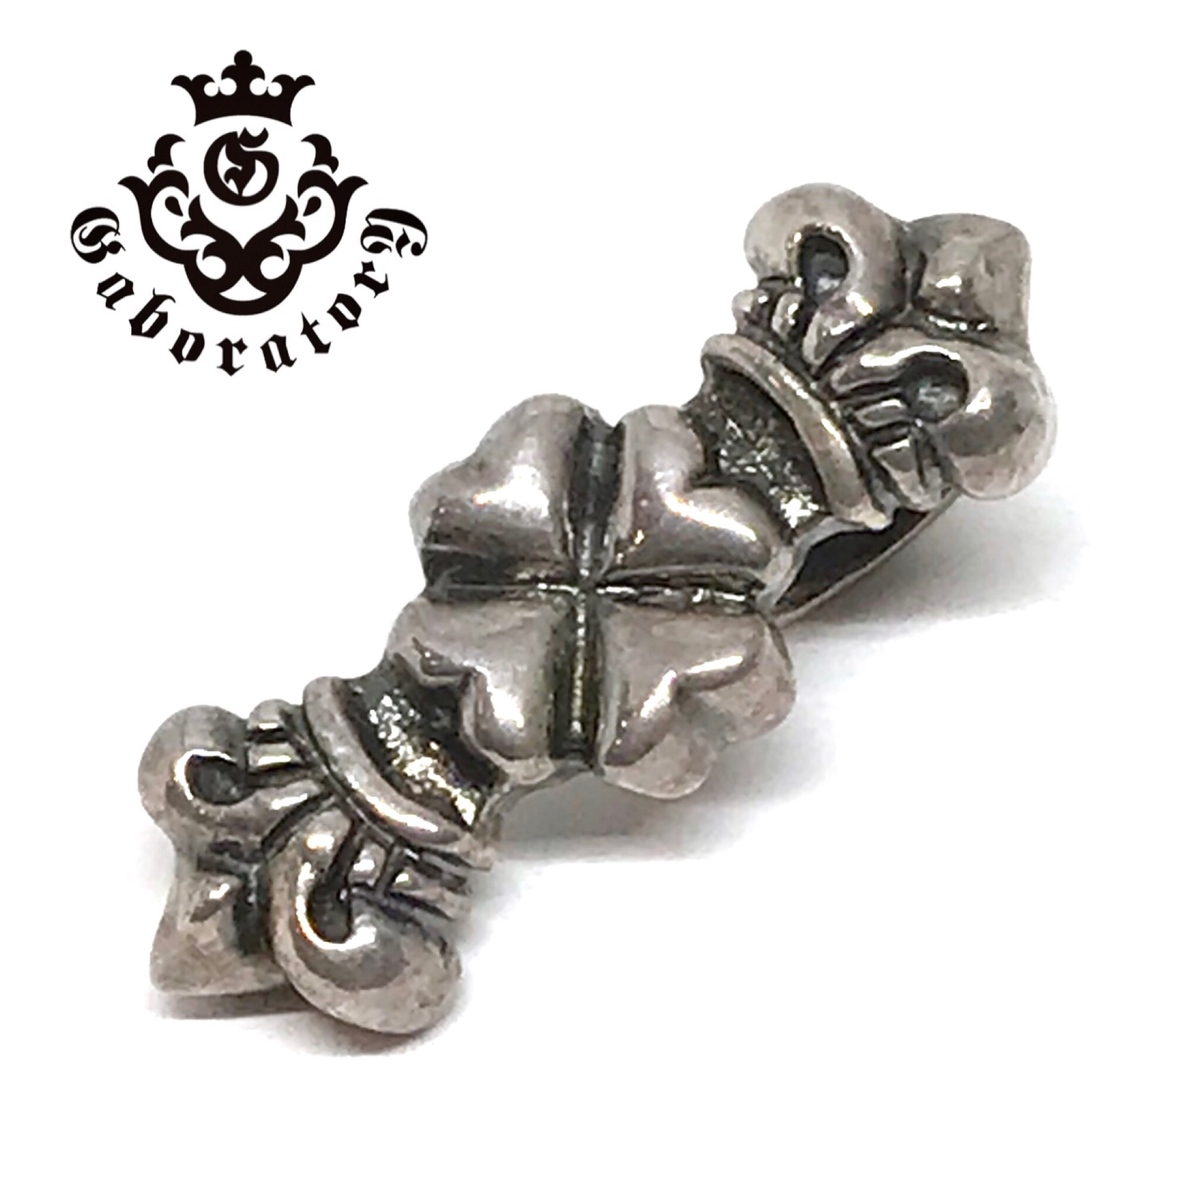 Gaboratory/ガボラトリー ペンダントOne Eighth 4 4 Heart Heart Crown Pendant Pendant [Hanging type], コンタクトレンズギャラリー:85047eac --- anaphylaxisireland.ie